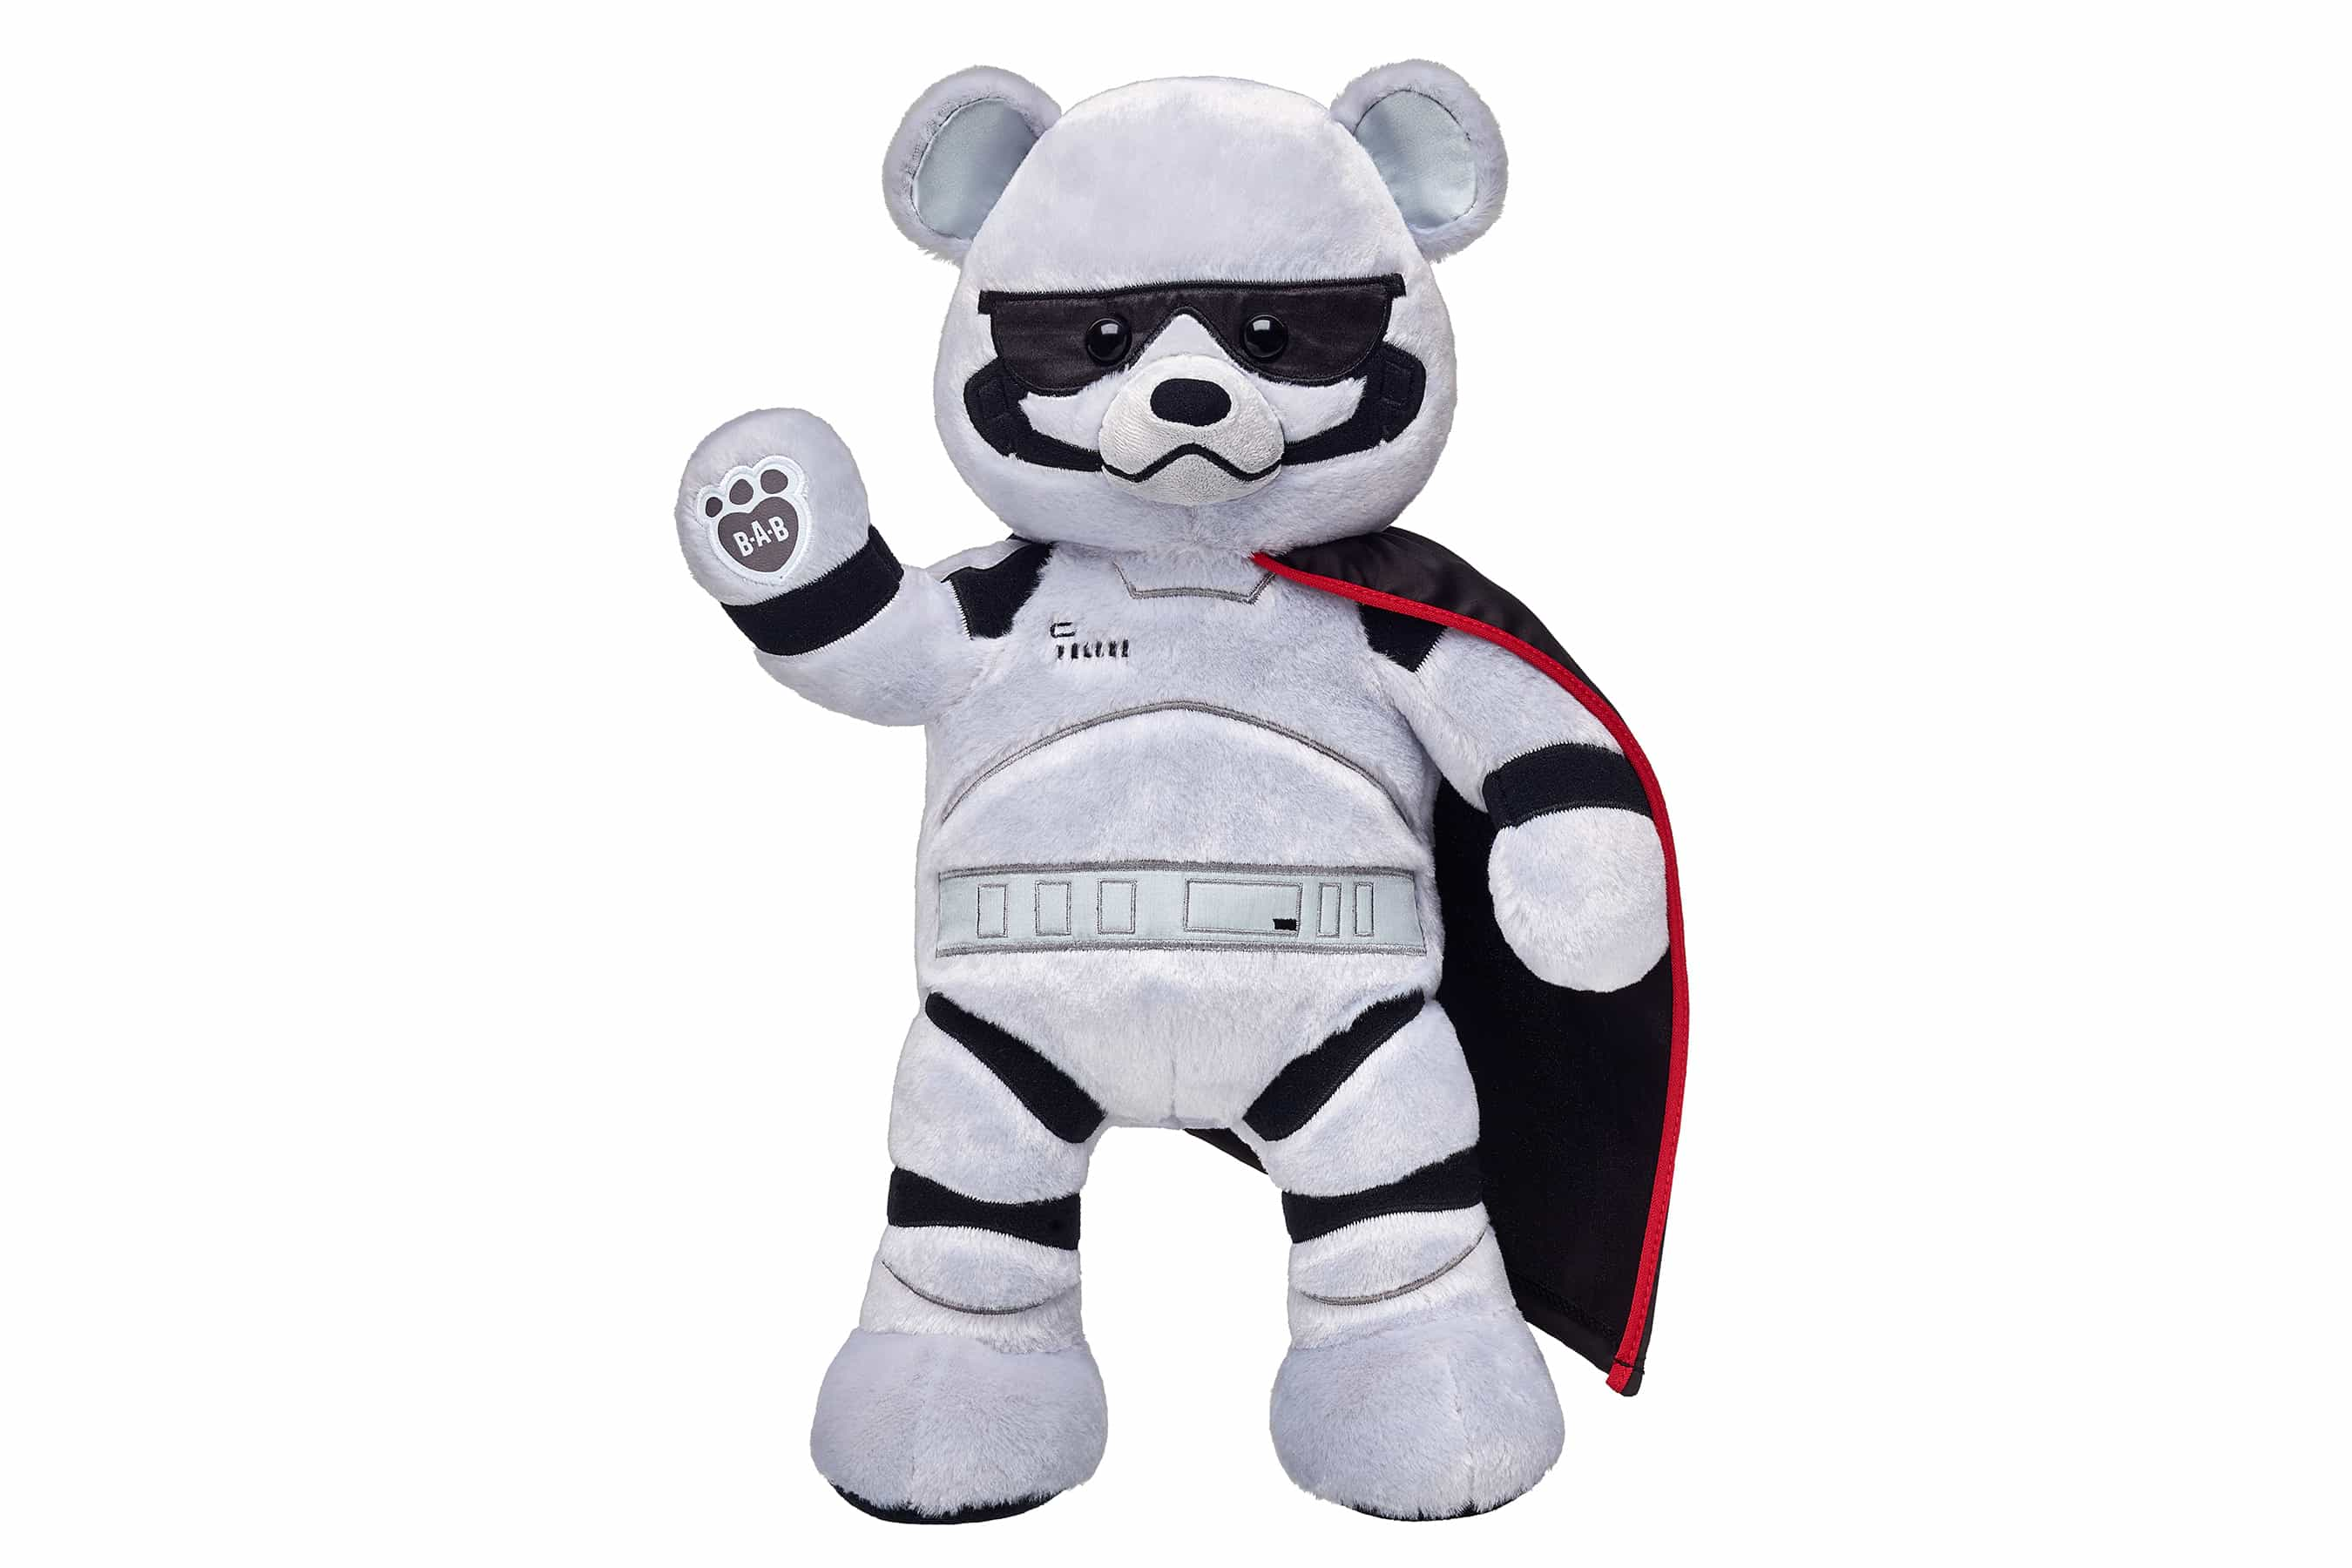 Star Wars The Last Jedi Build A Bear Collection Out Now